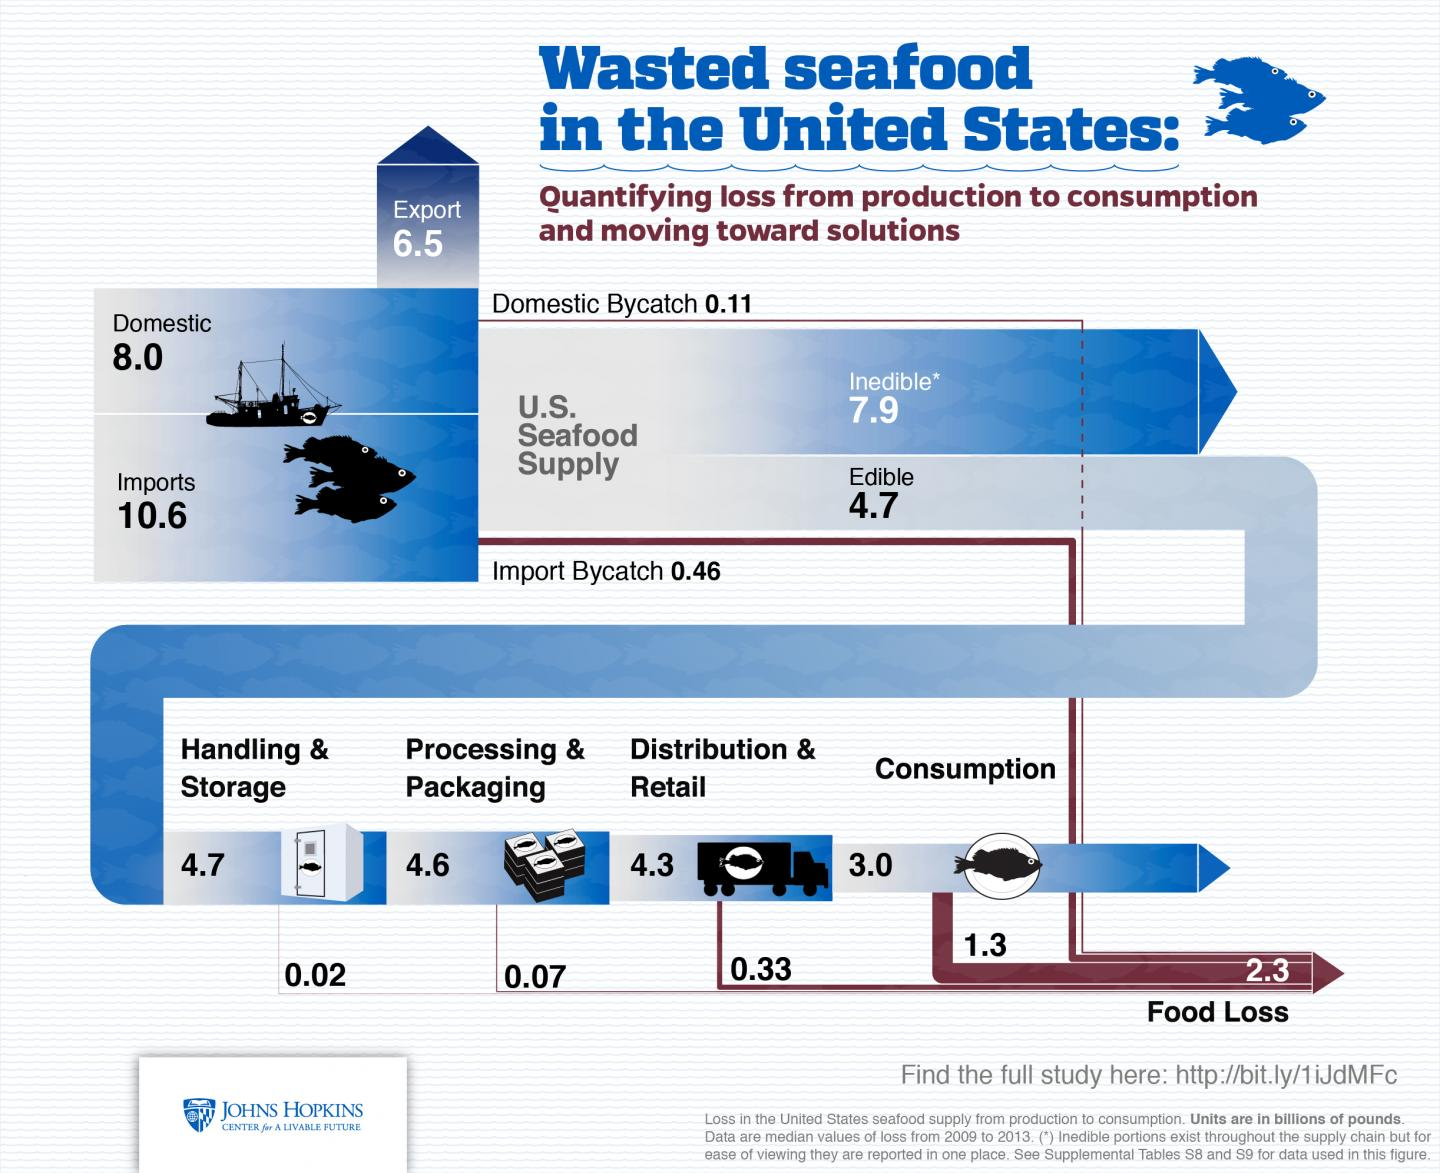 Graphic shows how seafood is wasted in the U.S. food supply chain, according to new research. Units are in billions of pounds. Graphic by Johns Hopkins Center for a Livable Future.